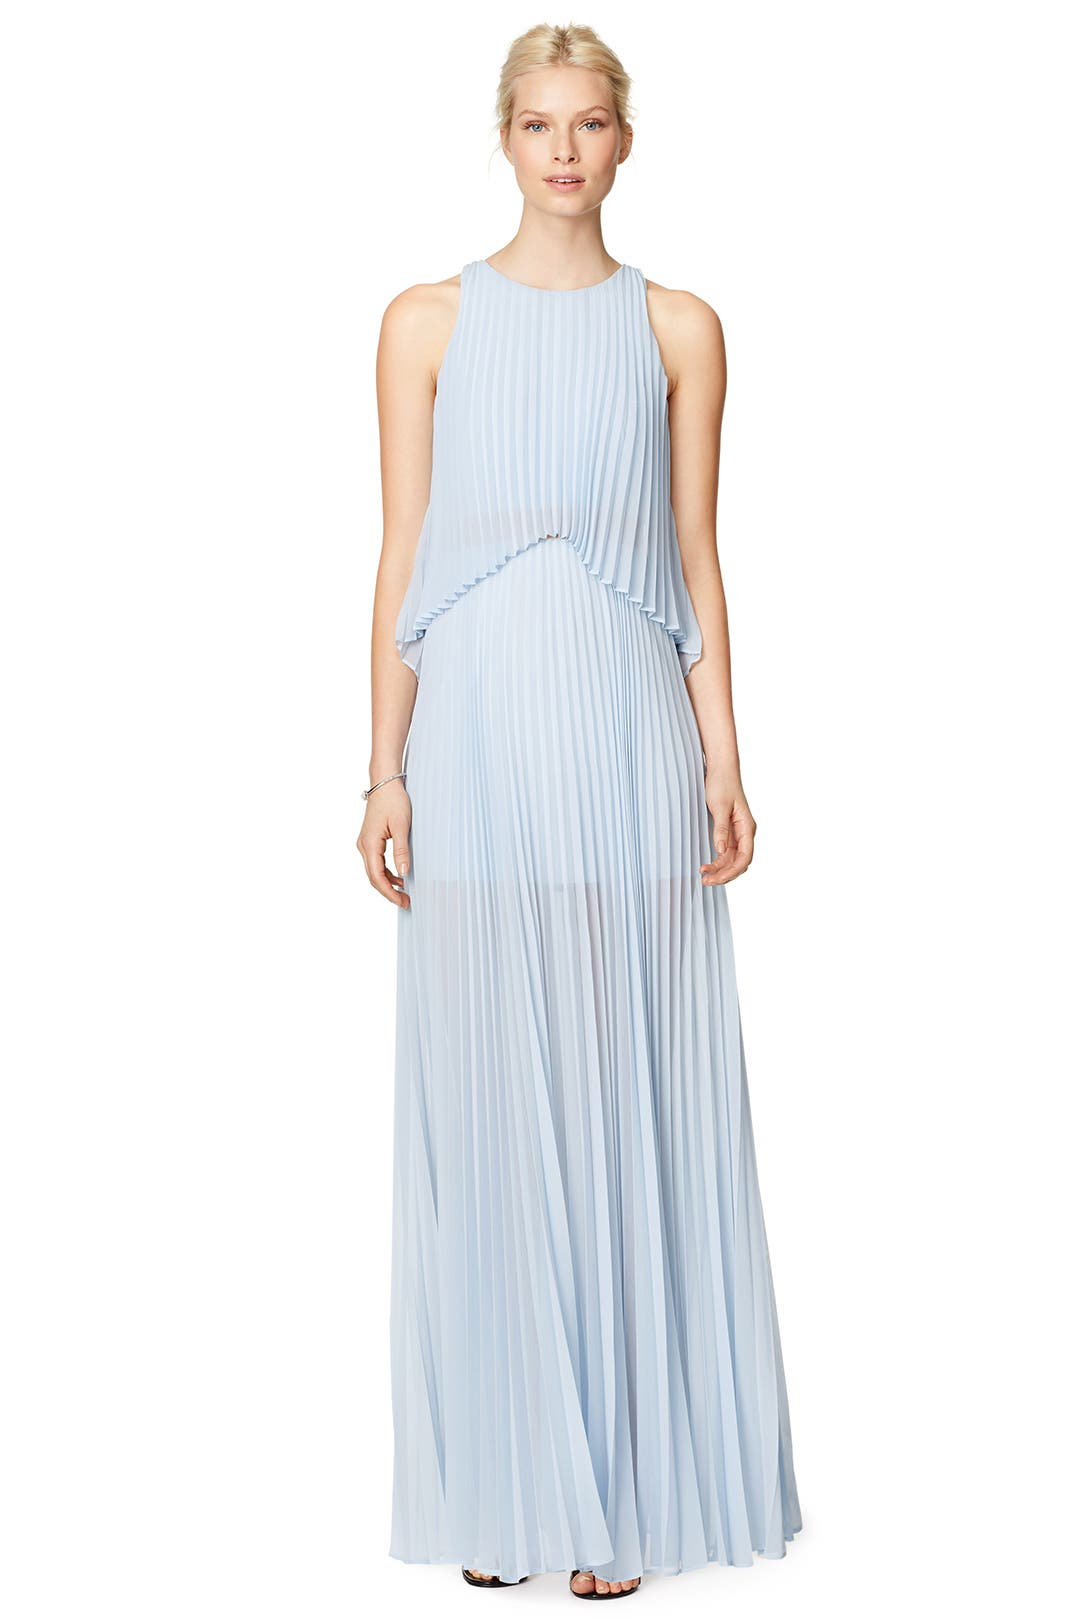 Shaina Pleated Gown by BCBGMAXAZRIA for $80 | Rent the Runway